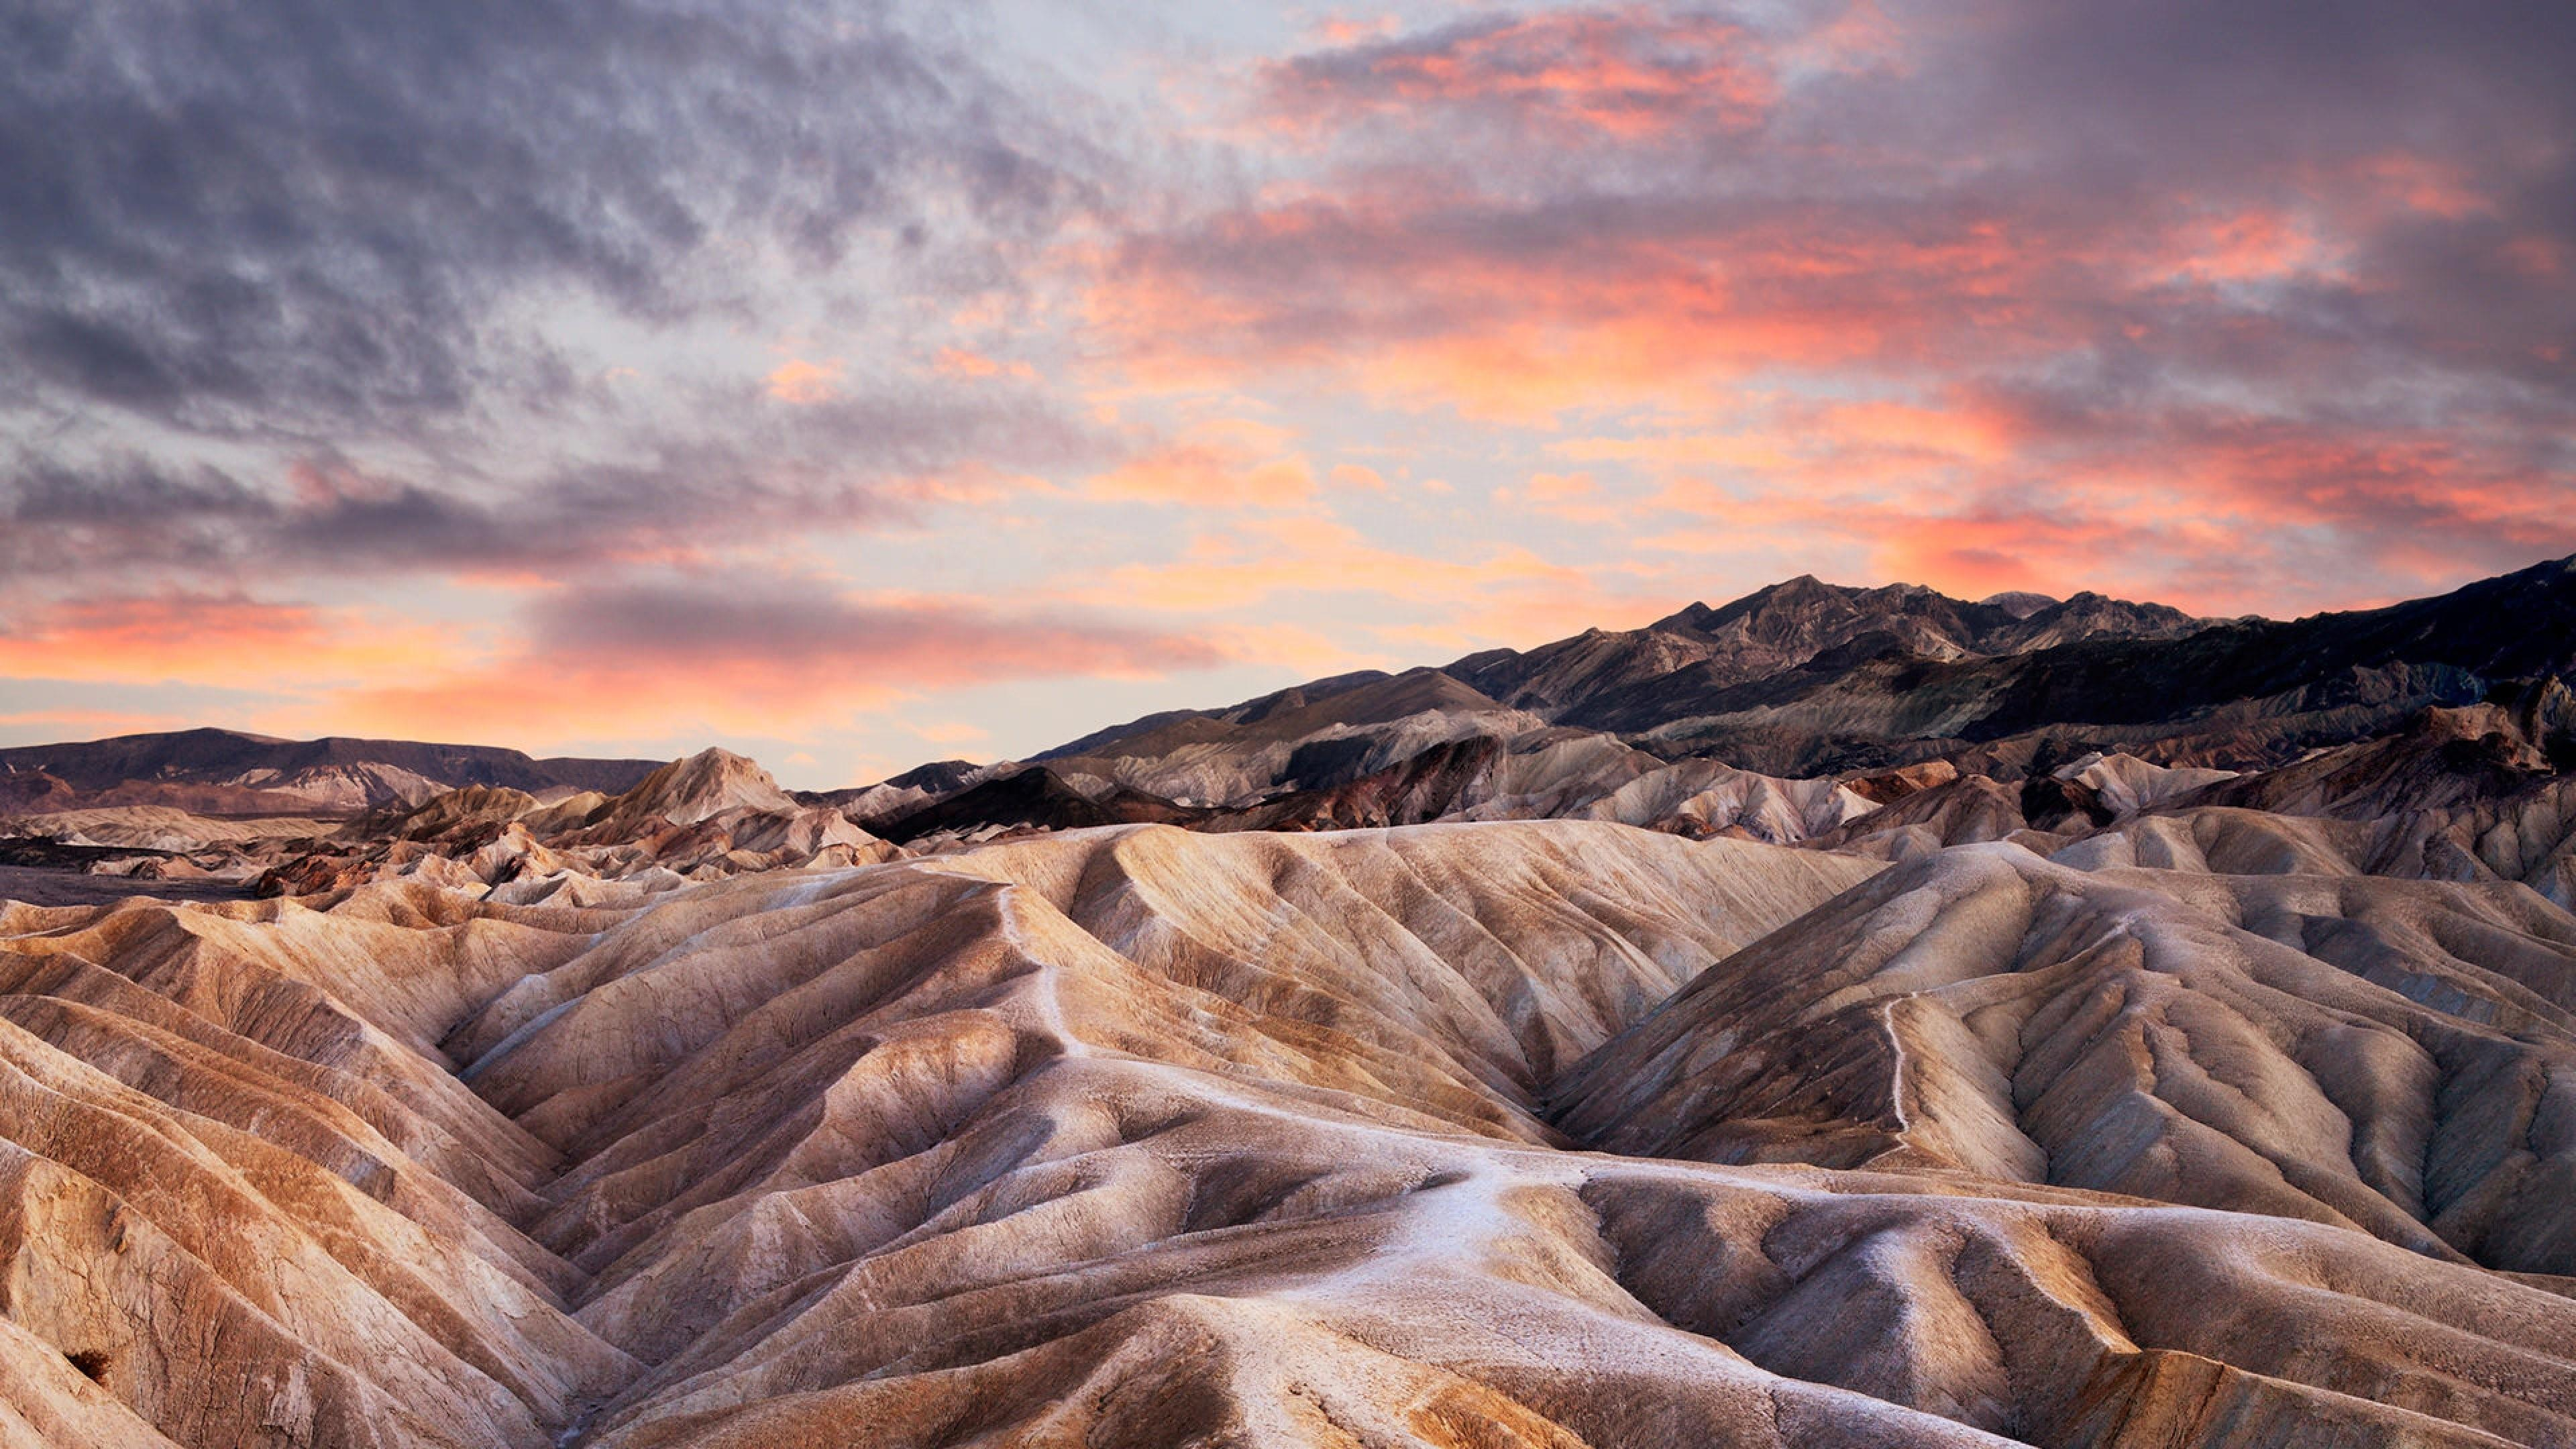 Death Valley Wallpapers and Background Images   stmednet 3840x2160